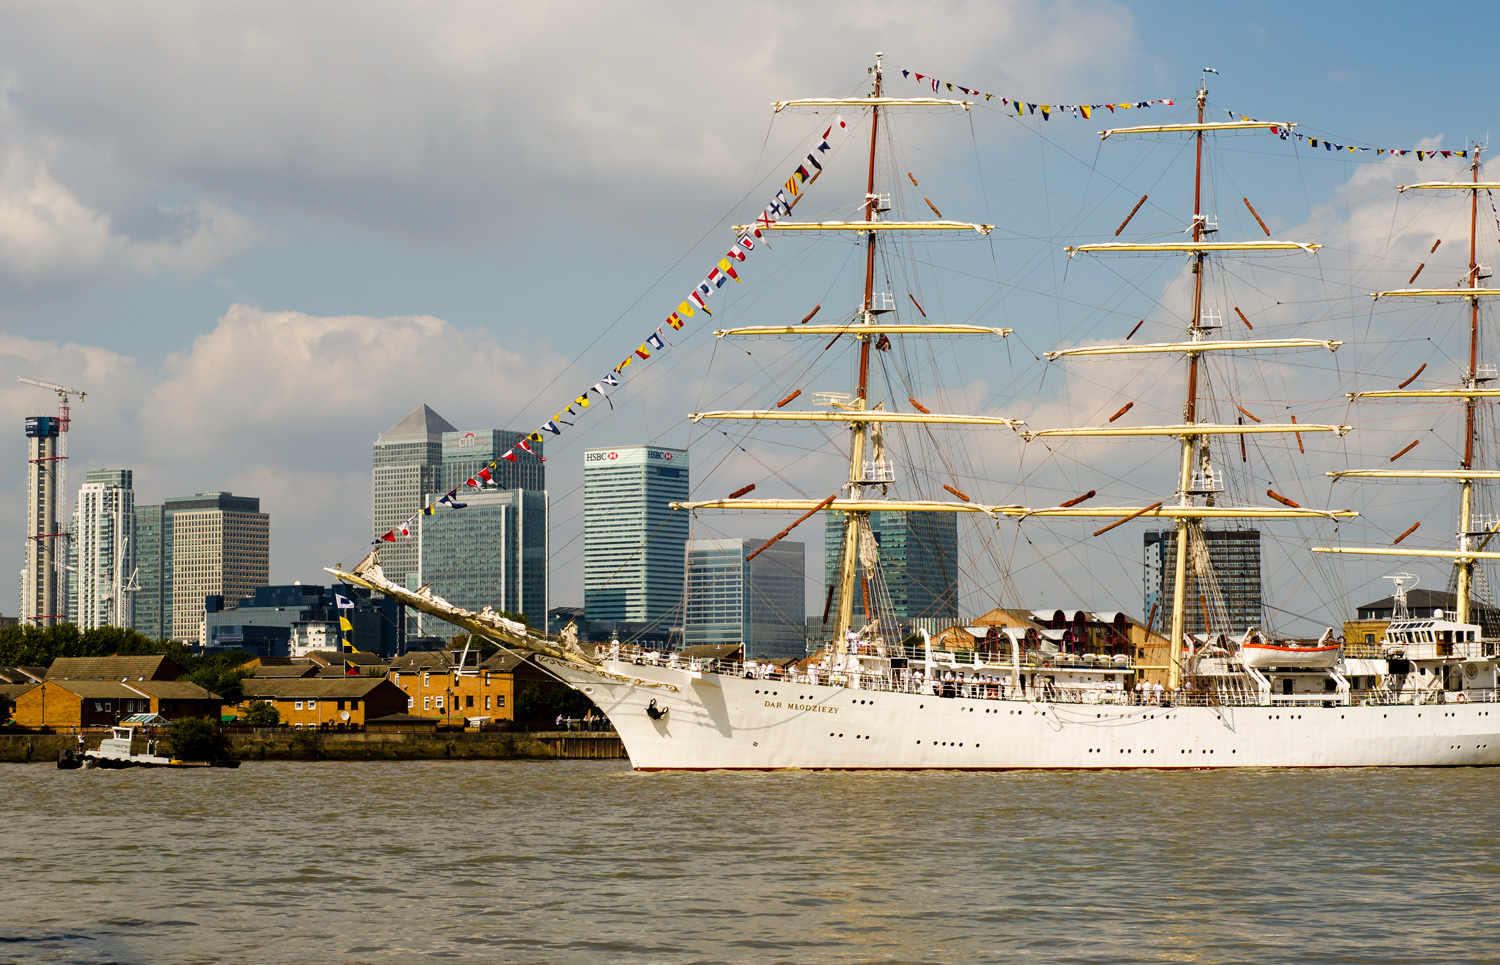 Travel Photo: London's Tall Ships Festival | Europe Is Our